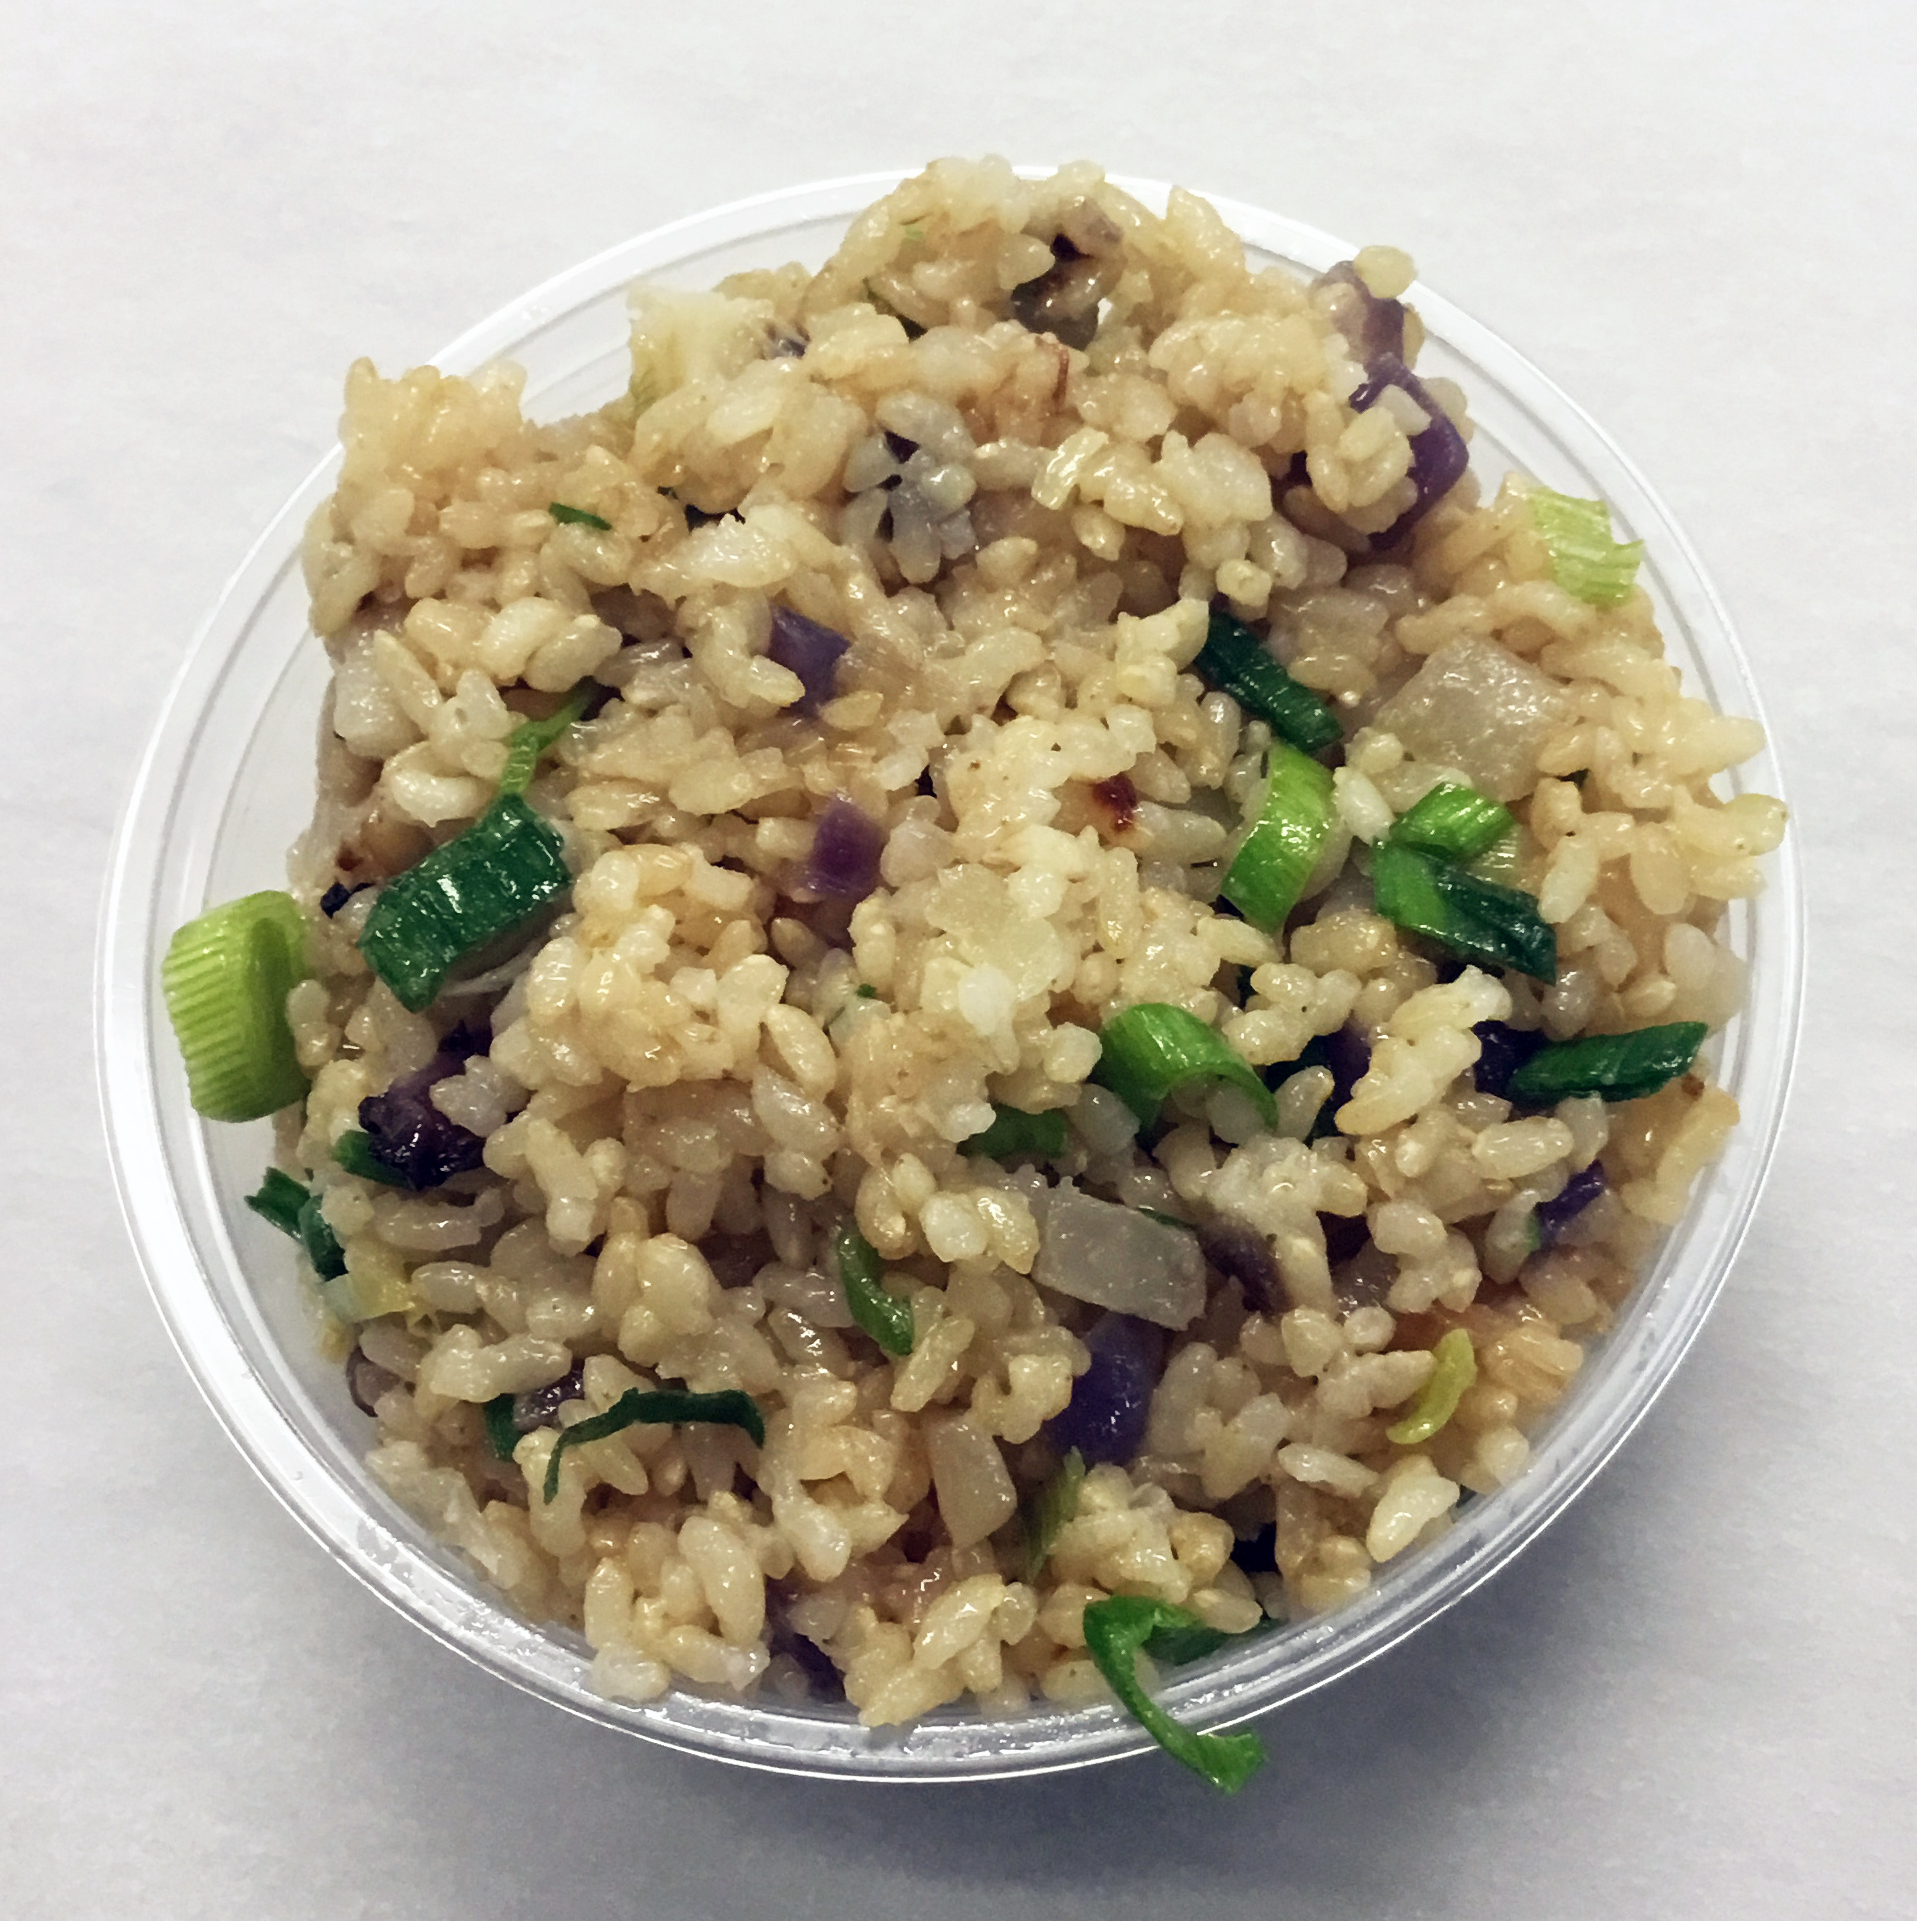 Stir fried brown rice with daikon radish, turnip, yellow onion and spring onion.